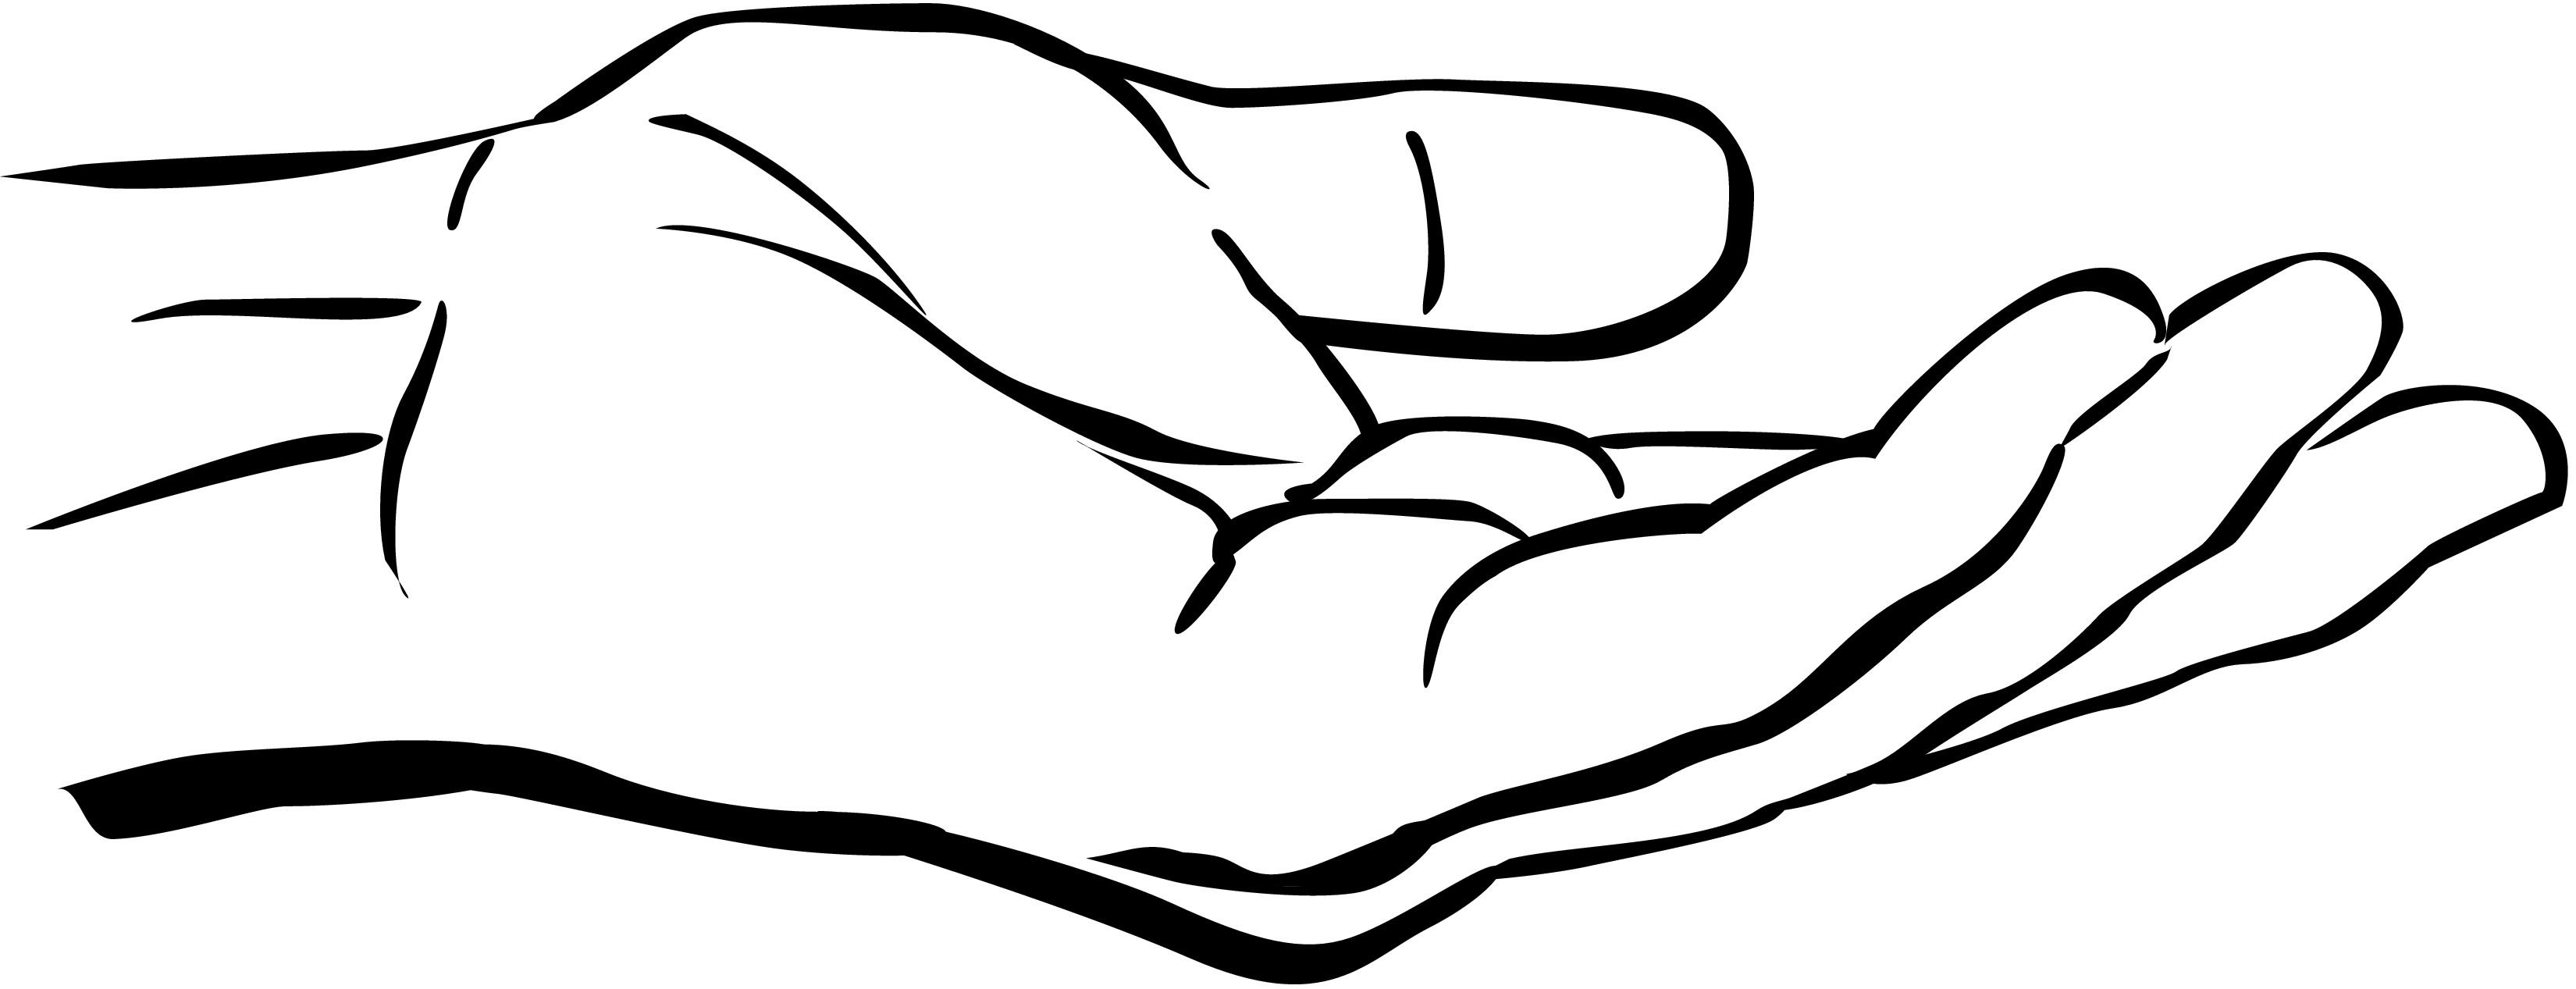 Hand reaching for something clipart